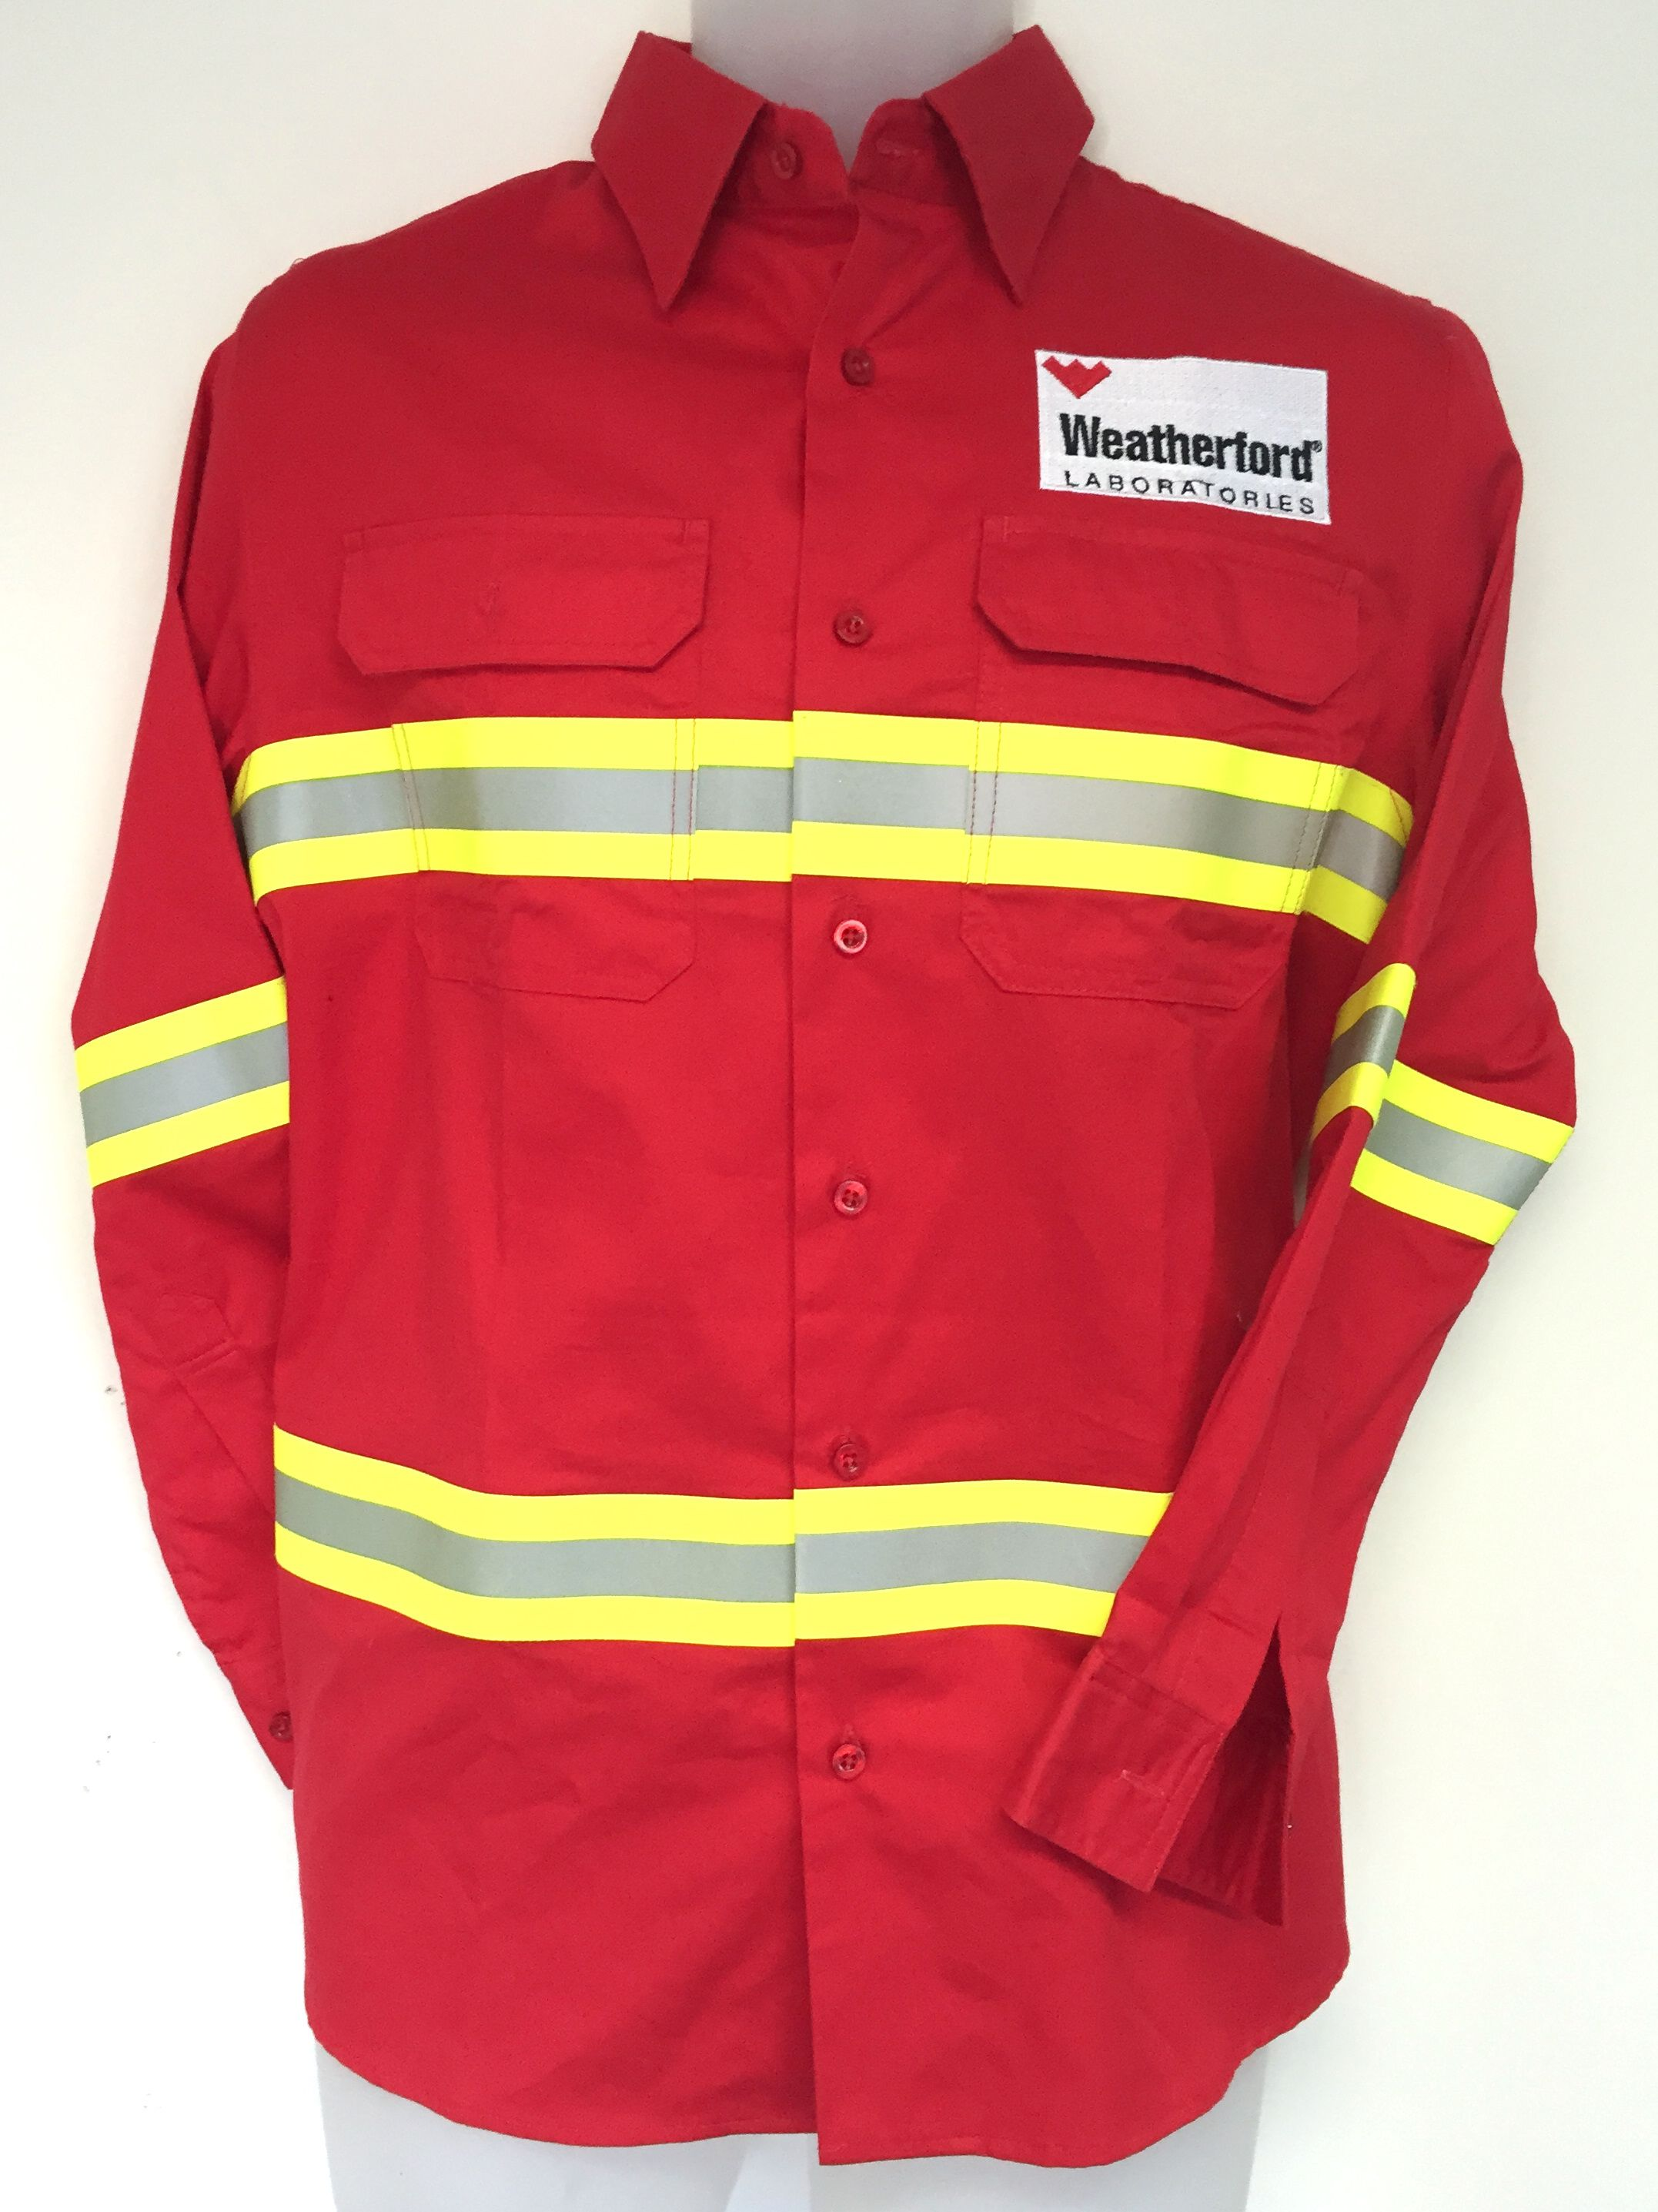 Check out this bright and different Red HI VIS cotton drill shirt ...